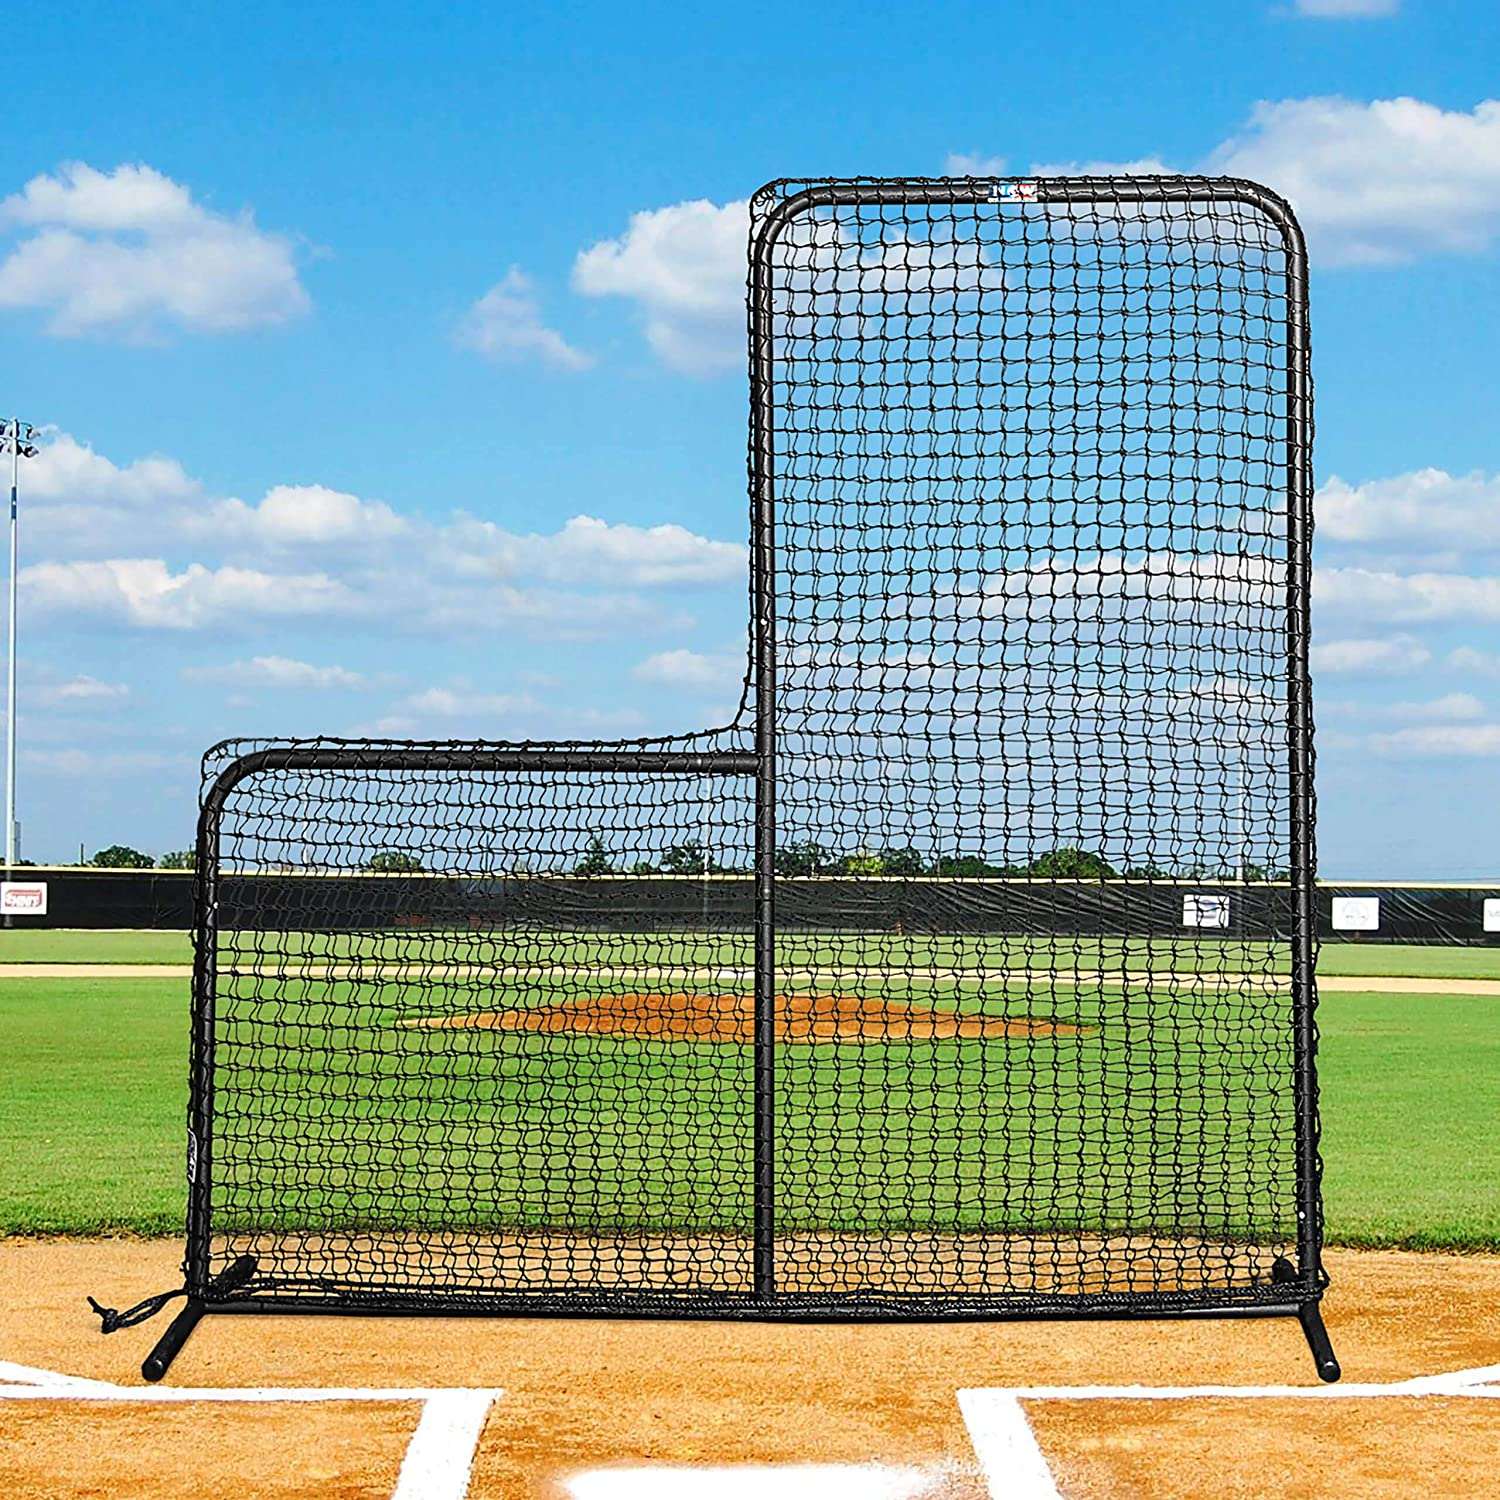 Best L Screen For The Money Baseball Pitching Screen Reviews